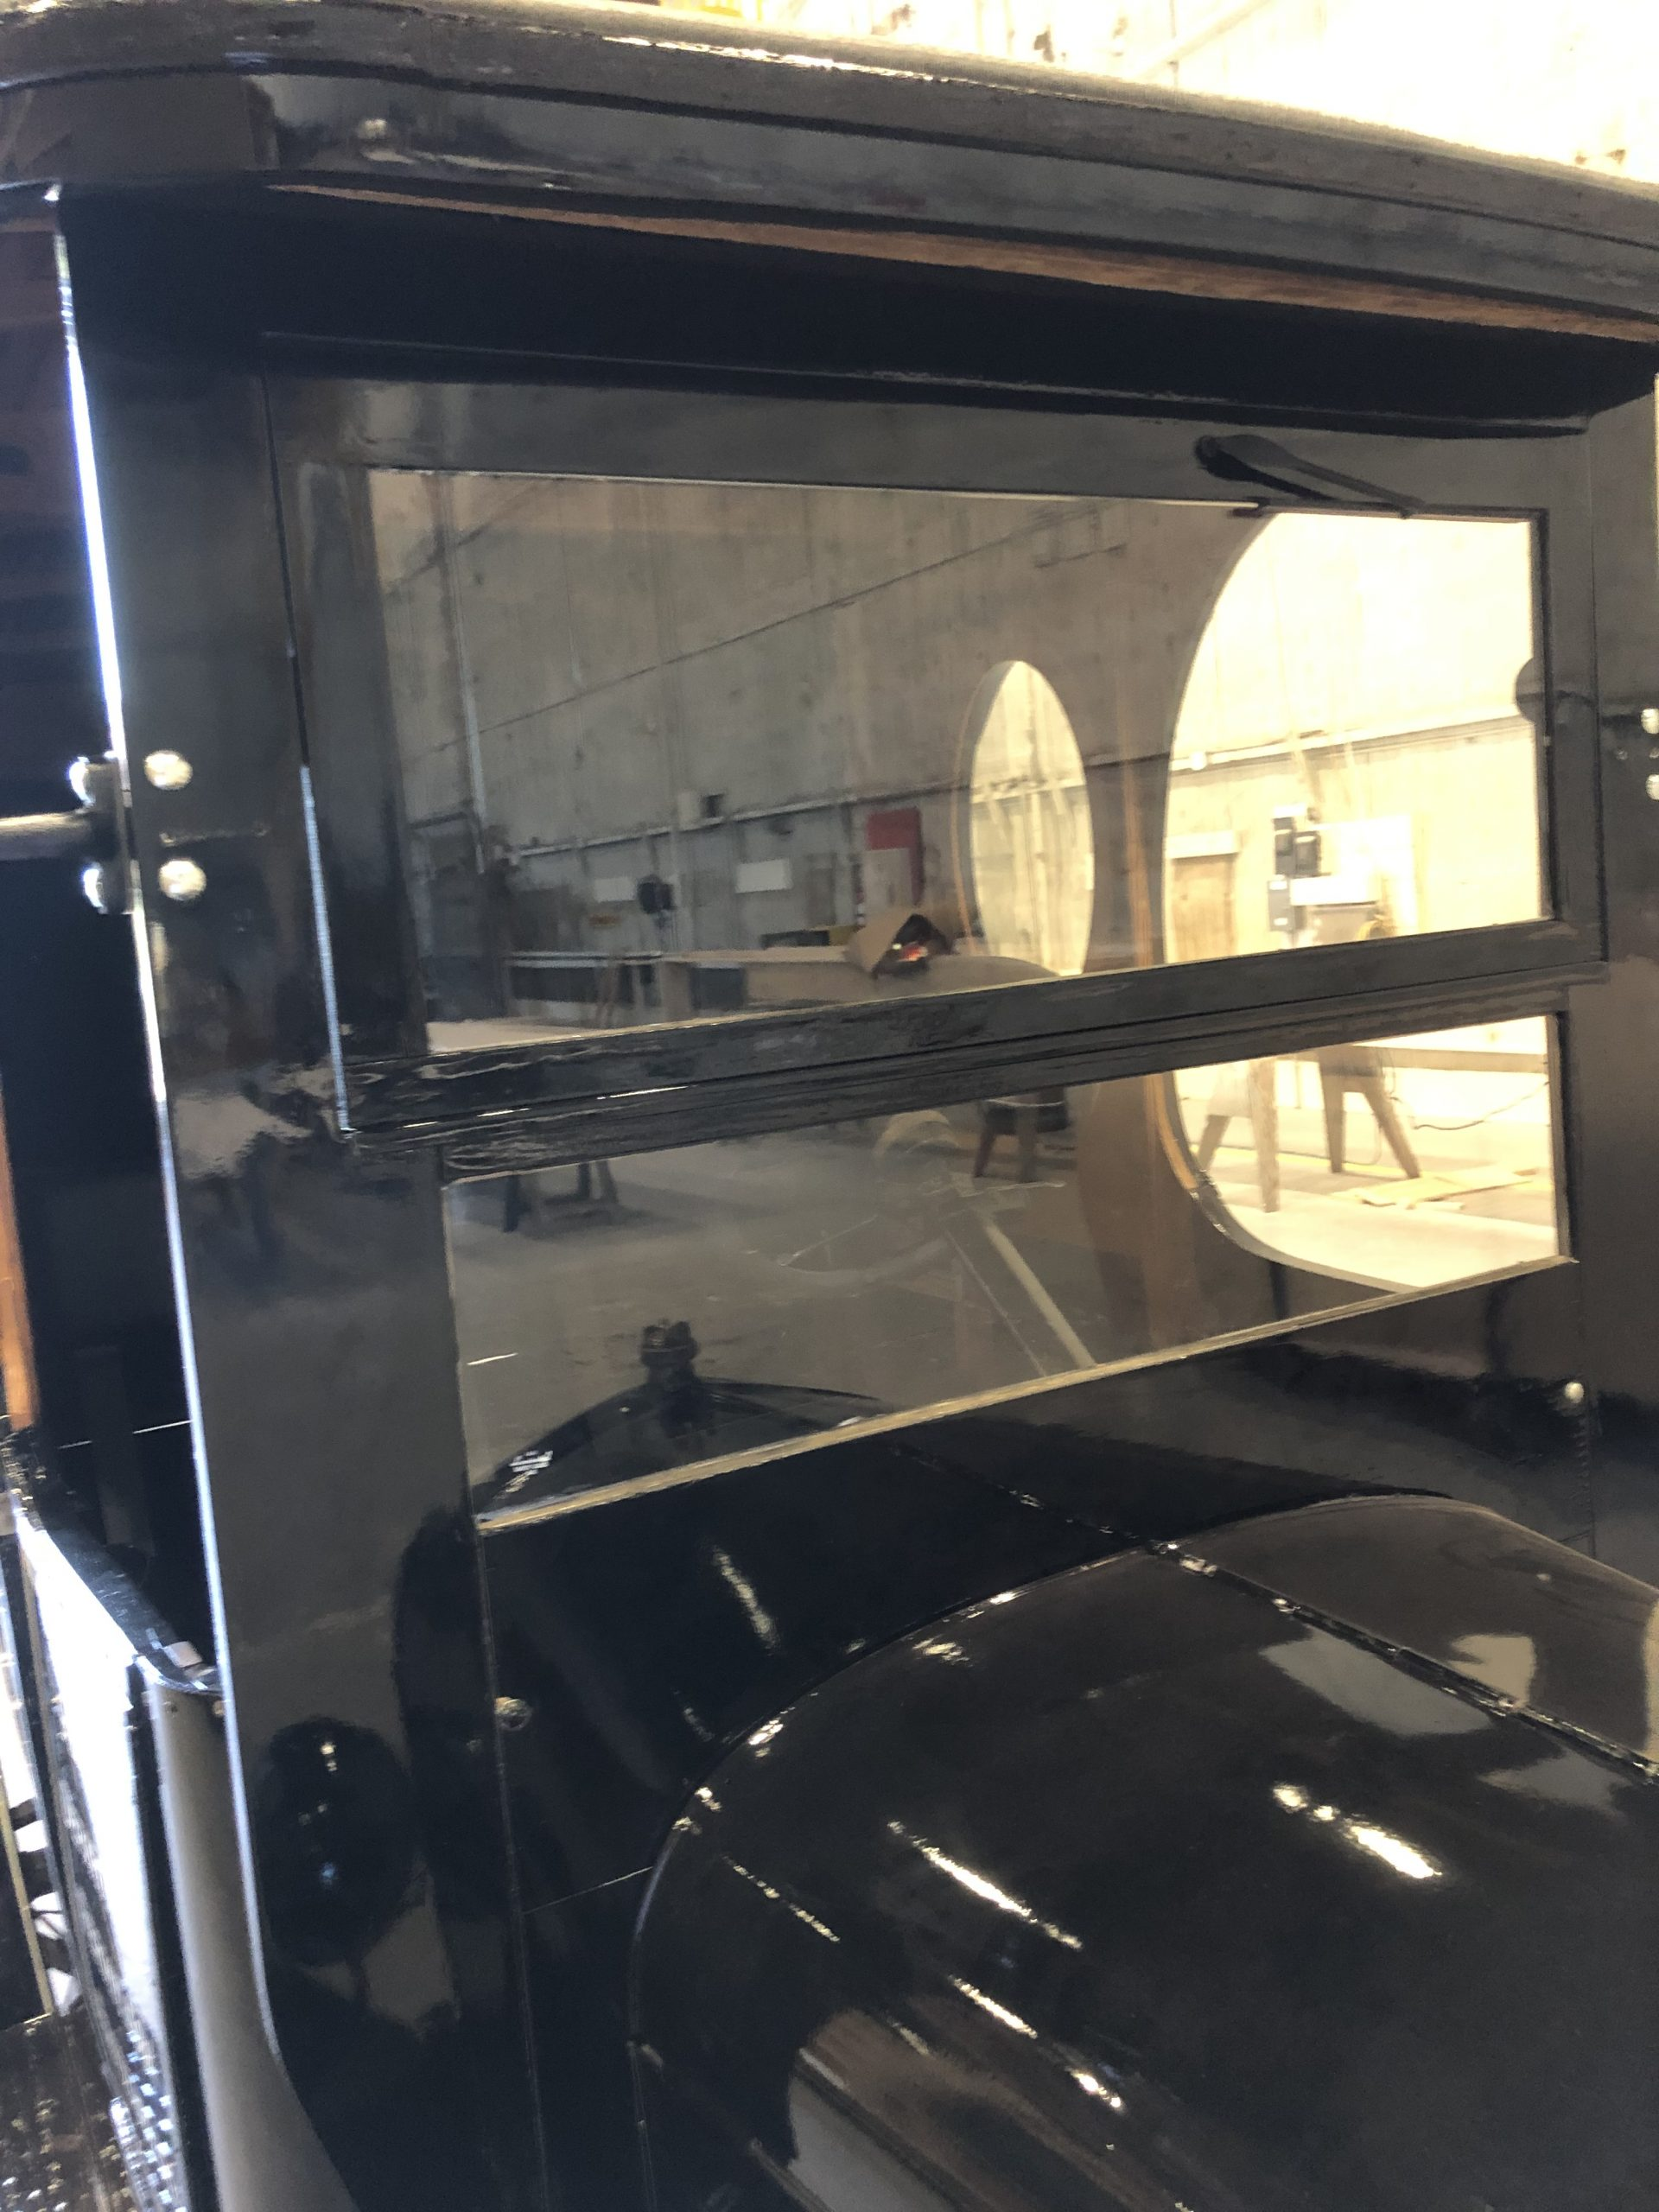 perry mason milktruck ford model t prop car windshield